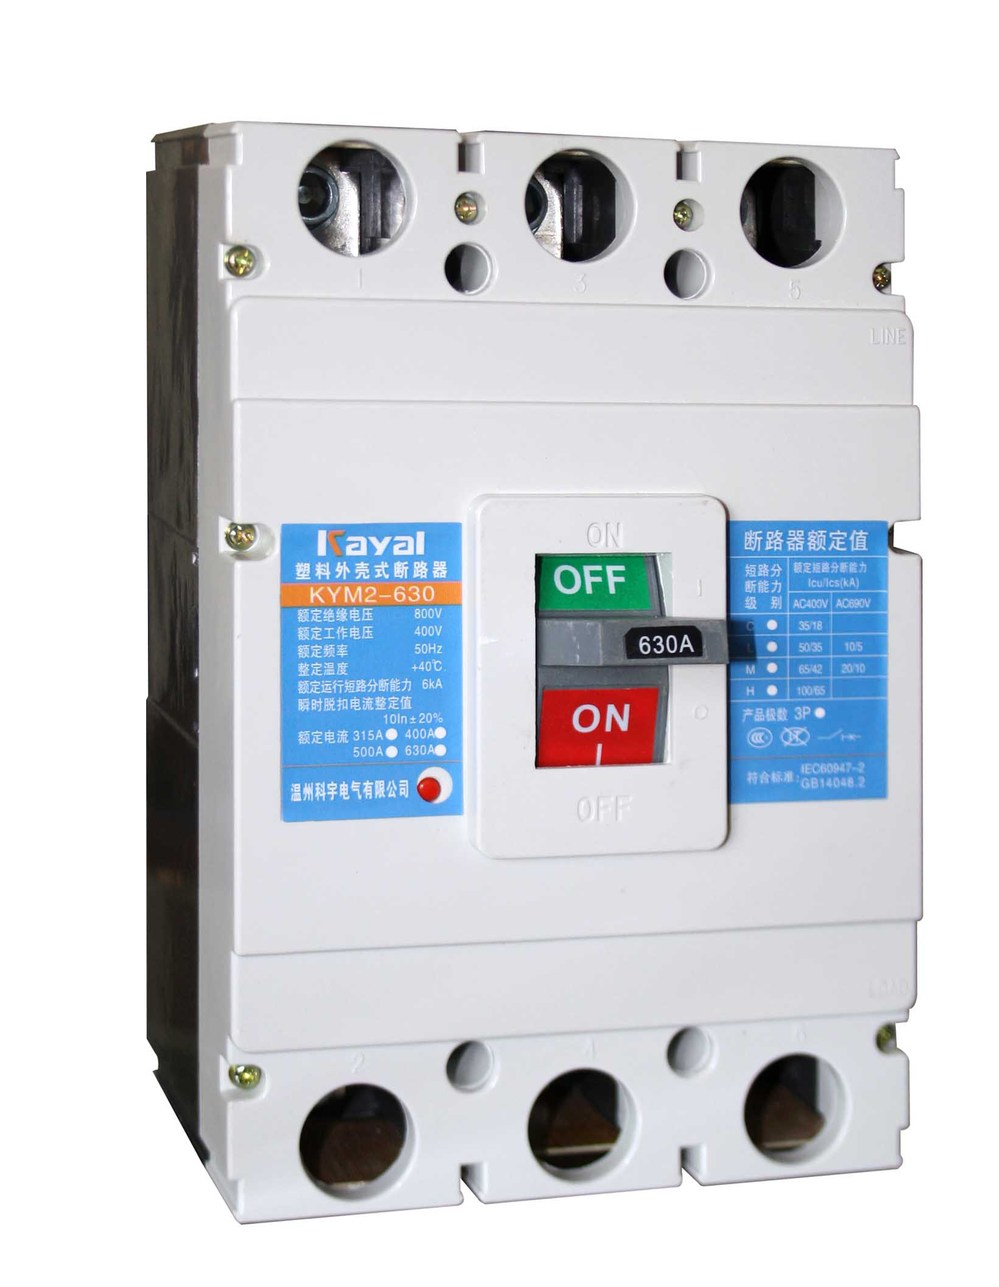 Earth Leakage Circuit Breaker together with 2 as well X072 DIN Rail Mount Miniature Circuit Breakers together with Standard Symbols For Circuit Diagrams furthermore Susol Mccb 65ka  250a P 1081. on earth leakage circuit breaker